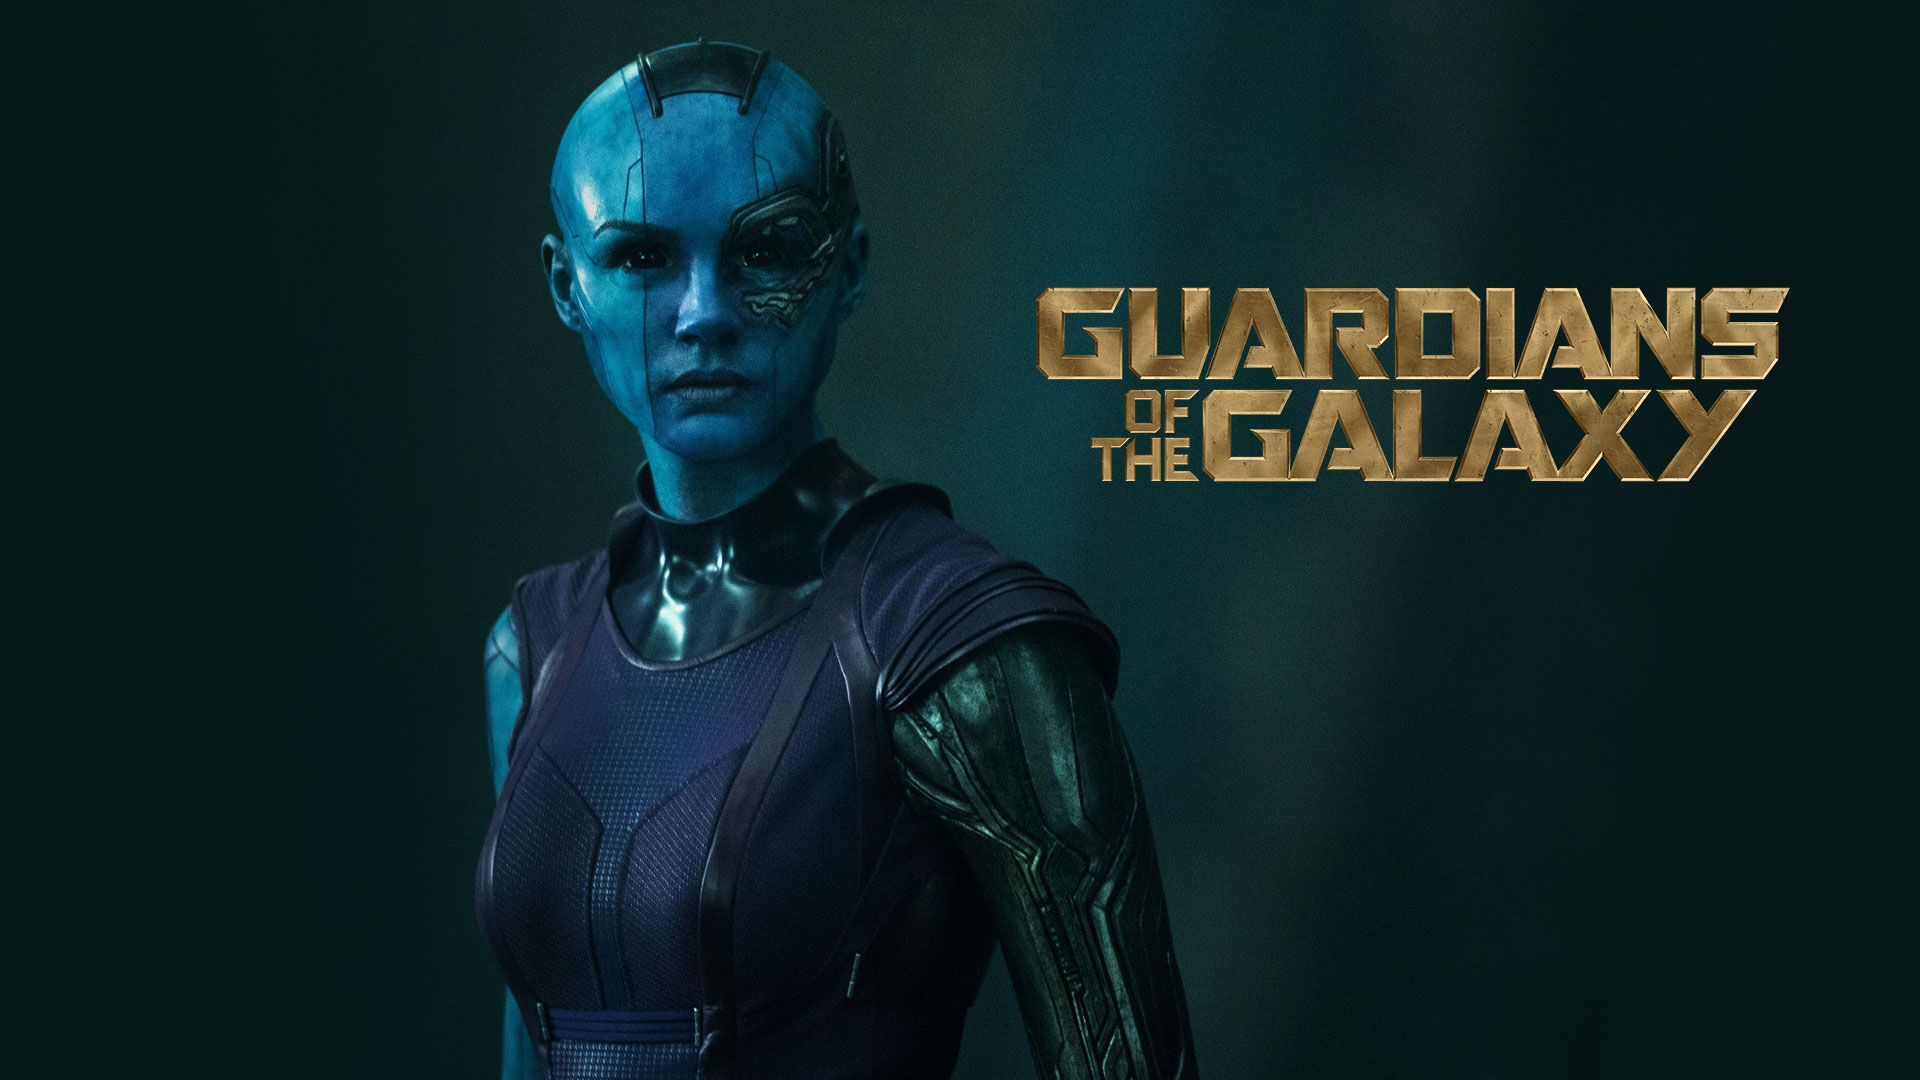 guardians-of-the-galaxy-nebula-karen-gillan-wallpaper